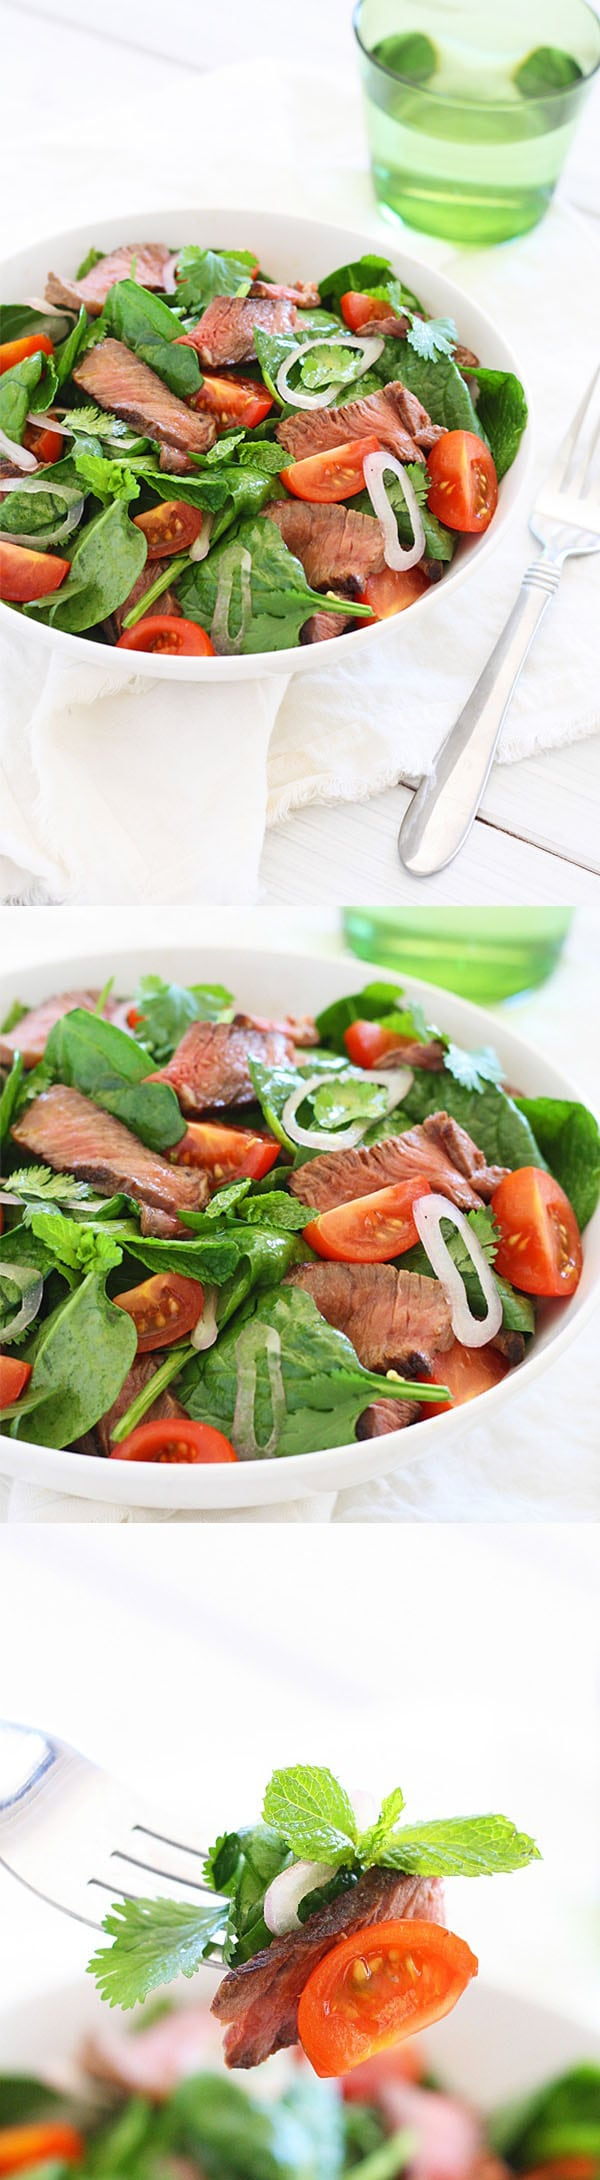 Thai Beef Salad is a tasty salad with beef and greens in a savory dressing. Easy Thai beef salad recipe that everyone can make at home.   rasamalaysia.com